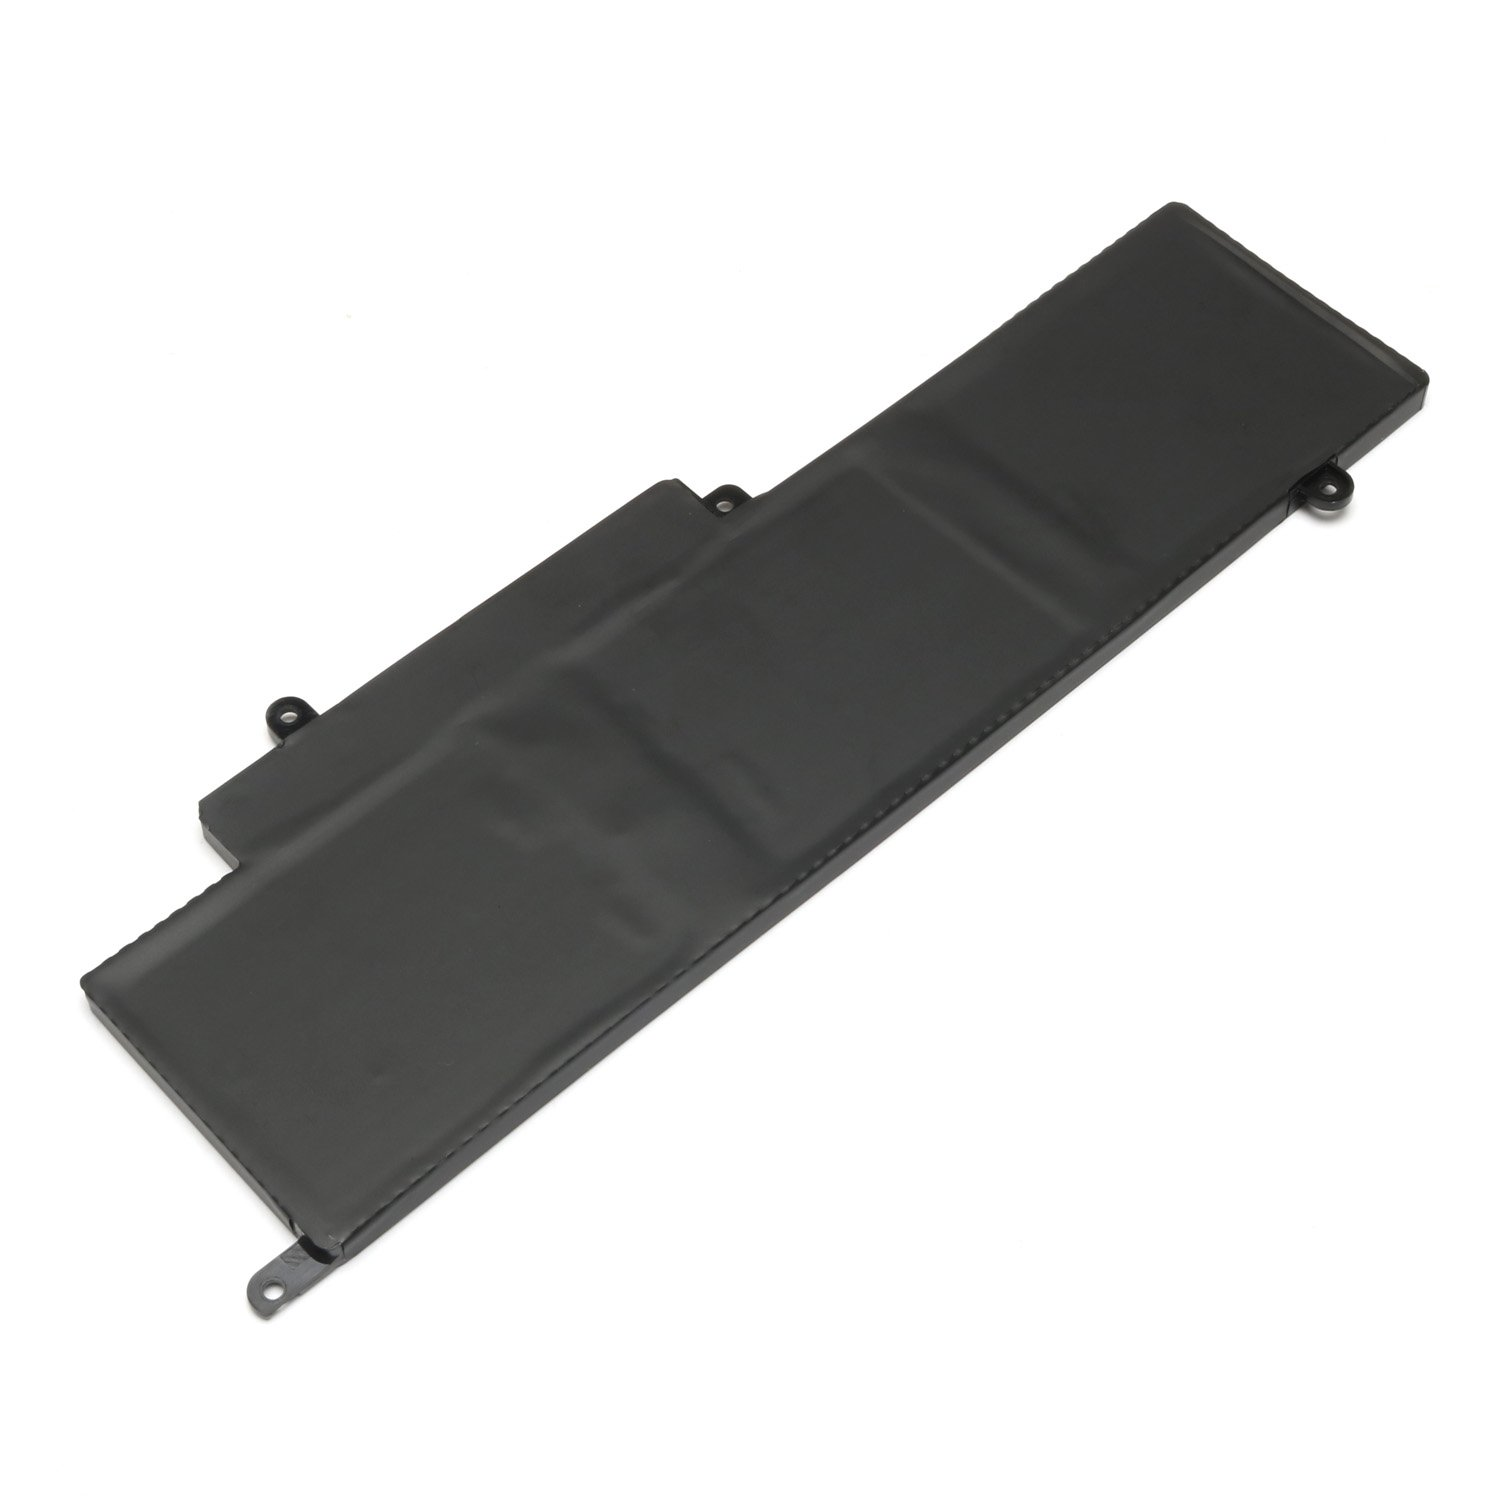 GK5KY New Laptop Battery for Dell Inspiron 11 3000 3147 3148 3152 13 7000 7353 7352 7347 7348 7359 7558 7568, Compatible P/N 04K8YH 92NCT 092NCT 4K8YH P20T Notebook PC by BULL-TECH (Image #6)